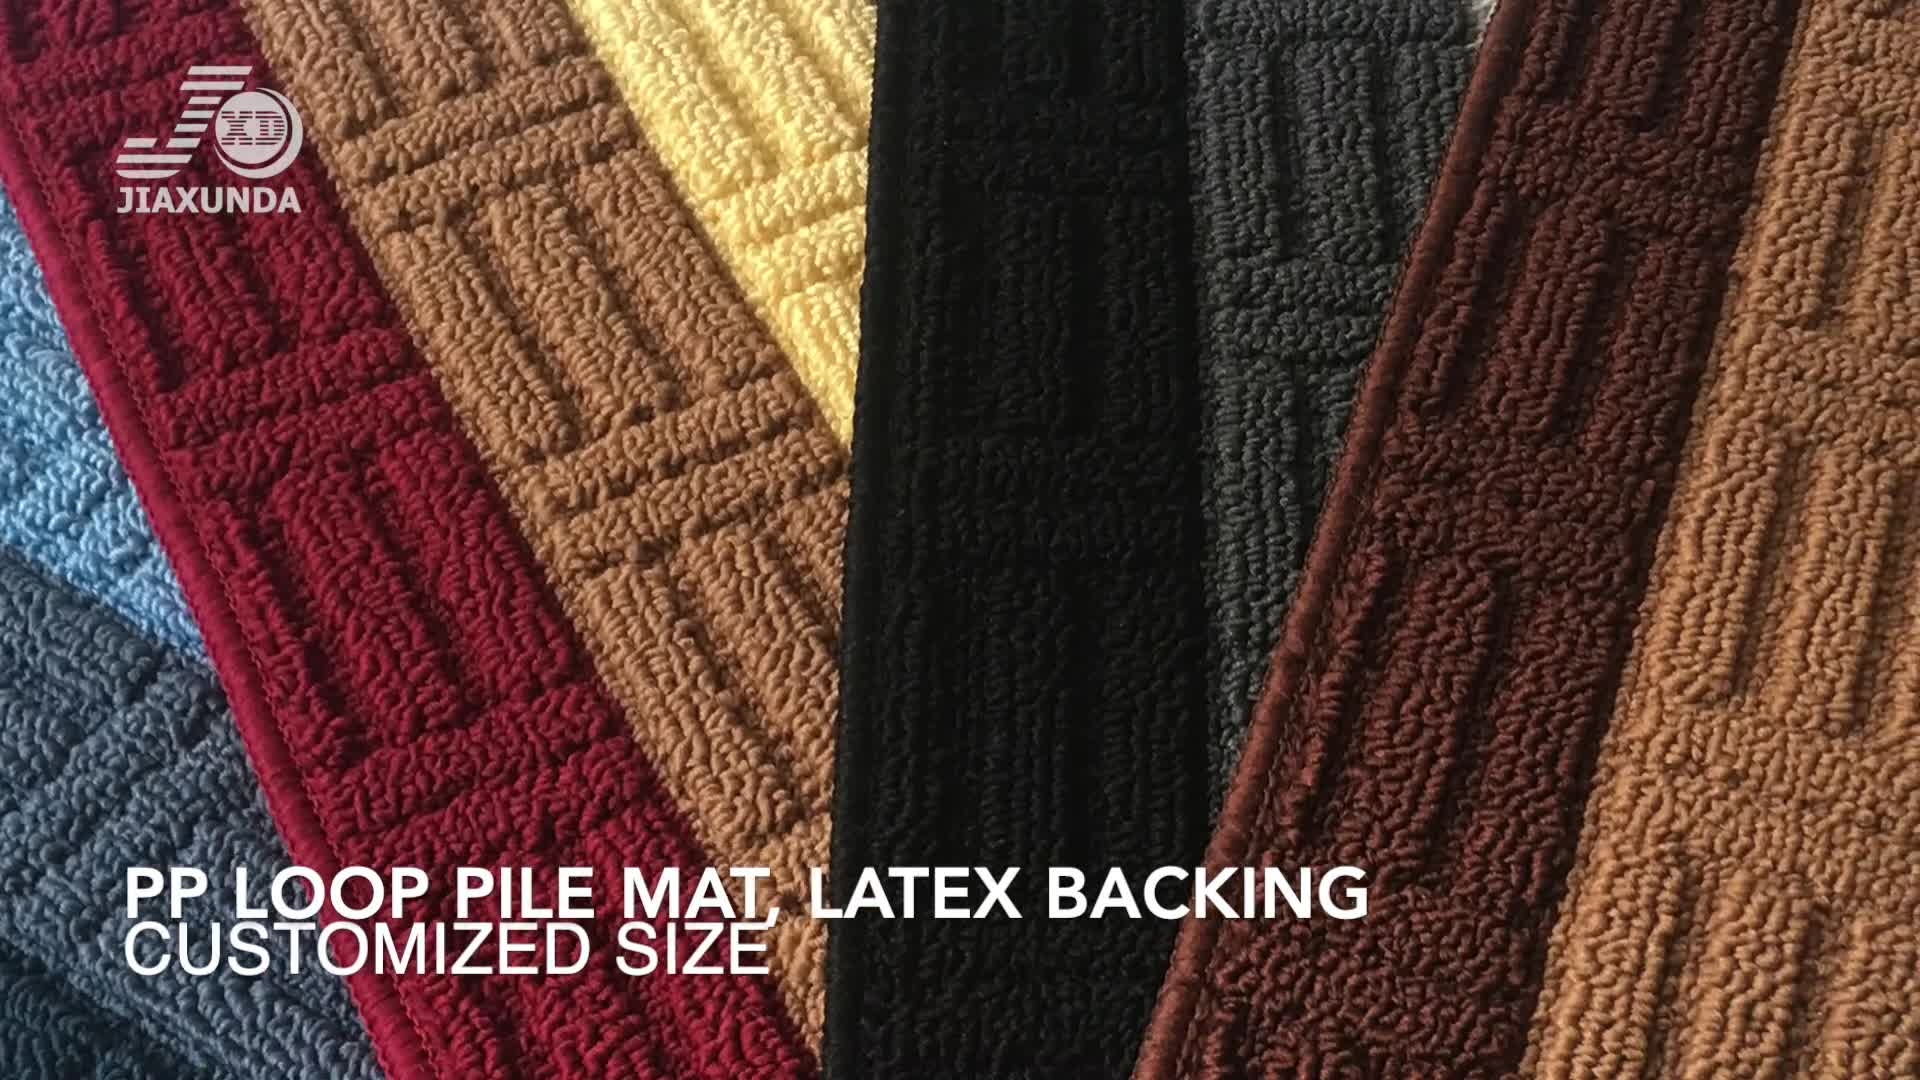 Textured Loop PP Pile rectangular size 40*120cm Non-skid latex backing washable Kitchen Mat